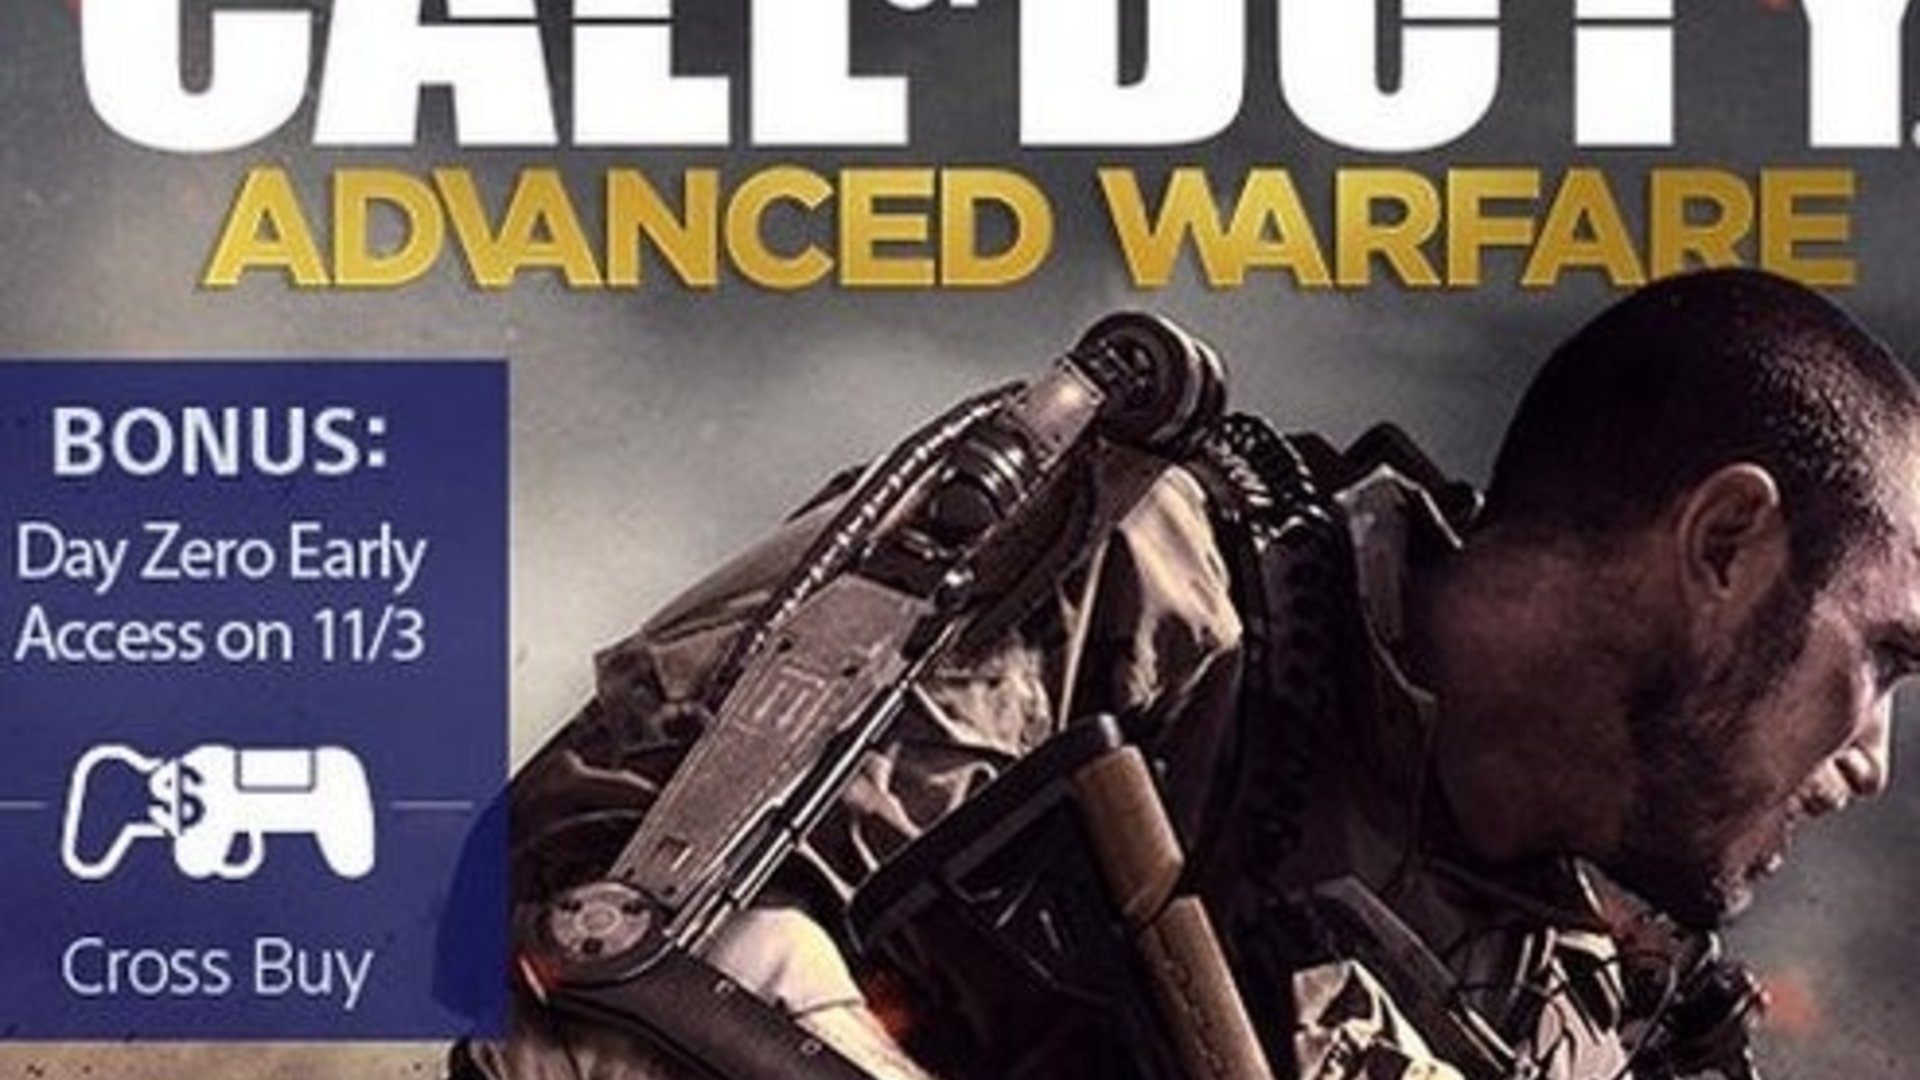 Call of Duty: Advanced Warfare is Cross-Buy for PS3 and PS4